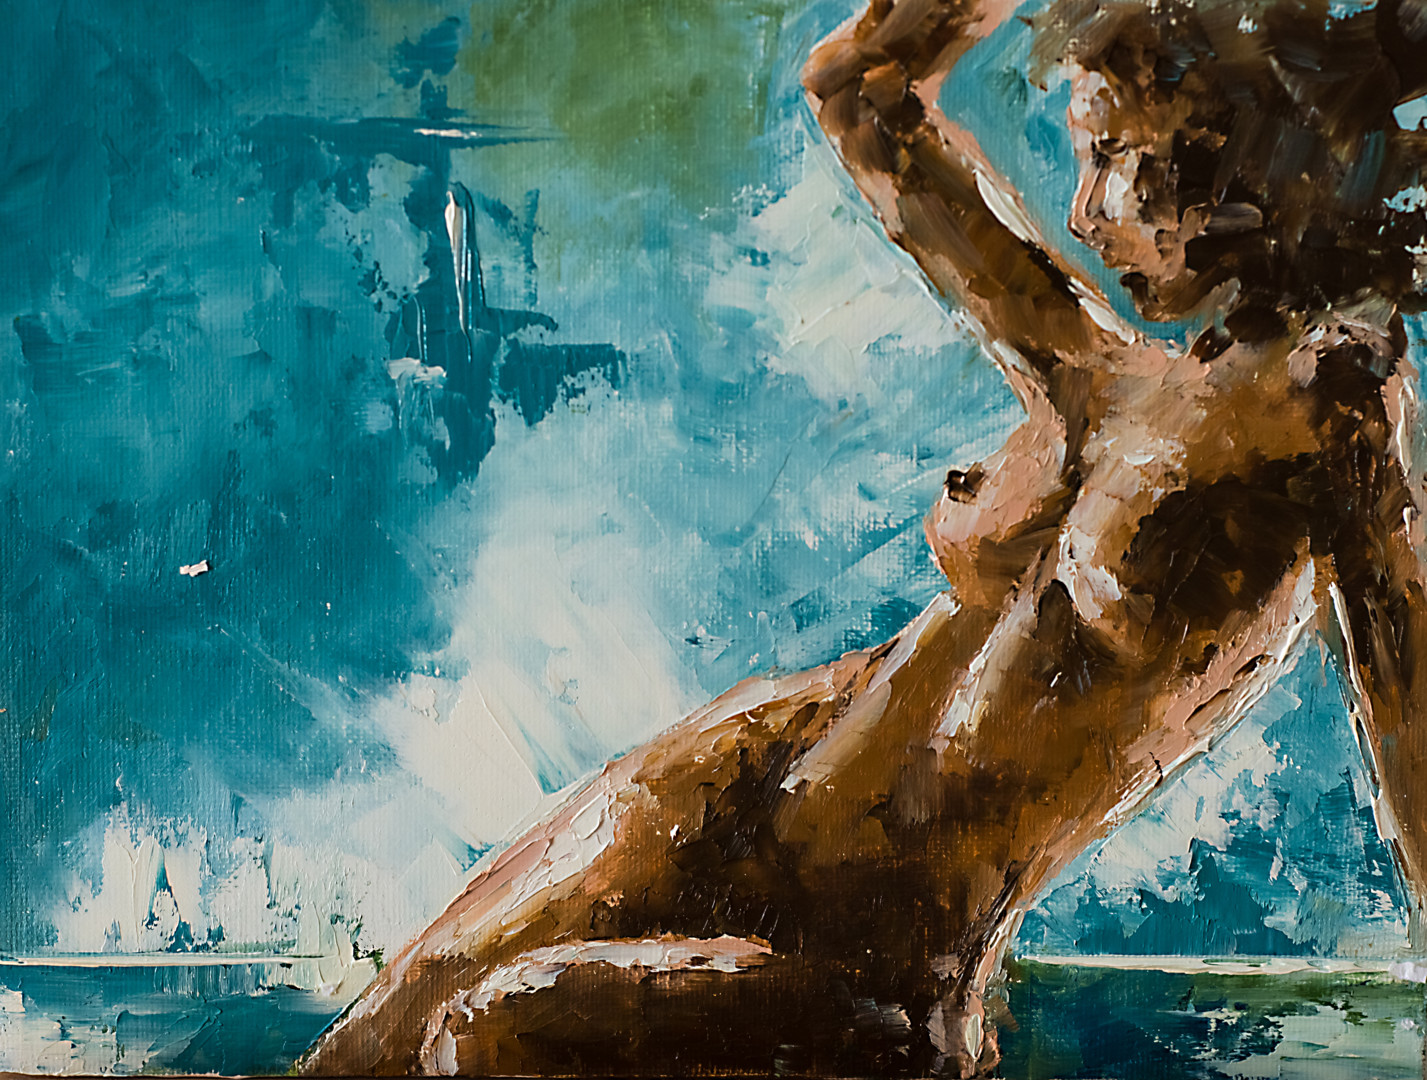 Blue naked women Naked Woman In Blue Painting By Marinko Saric Artmajeur